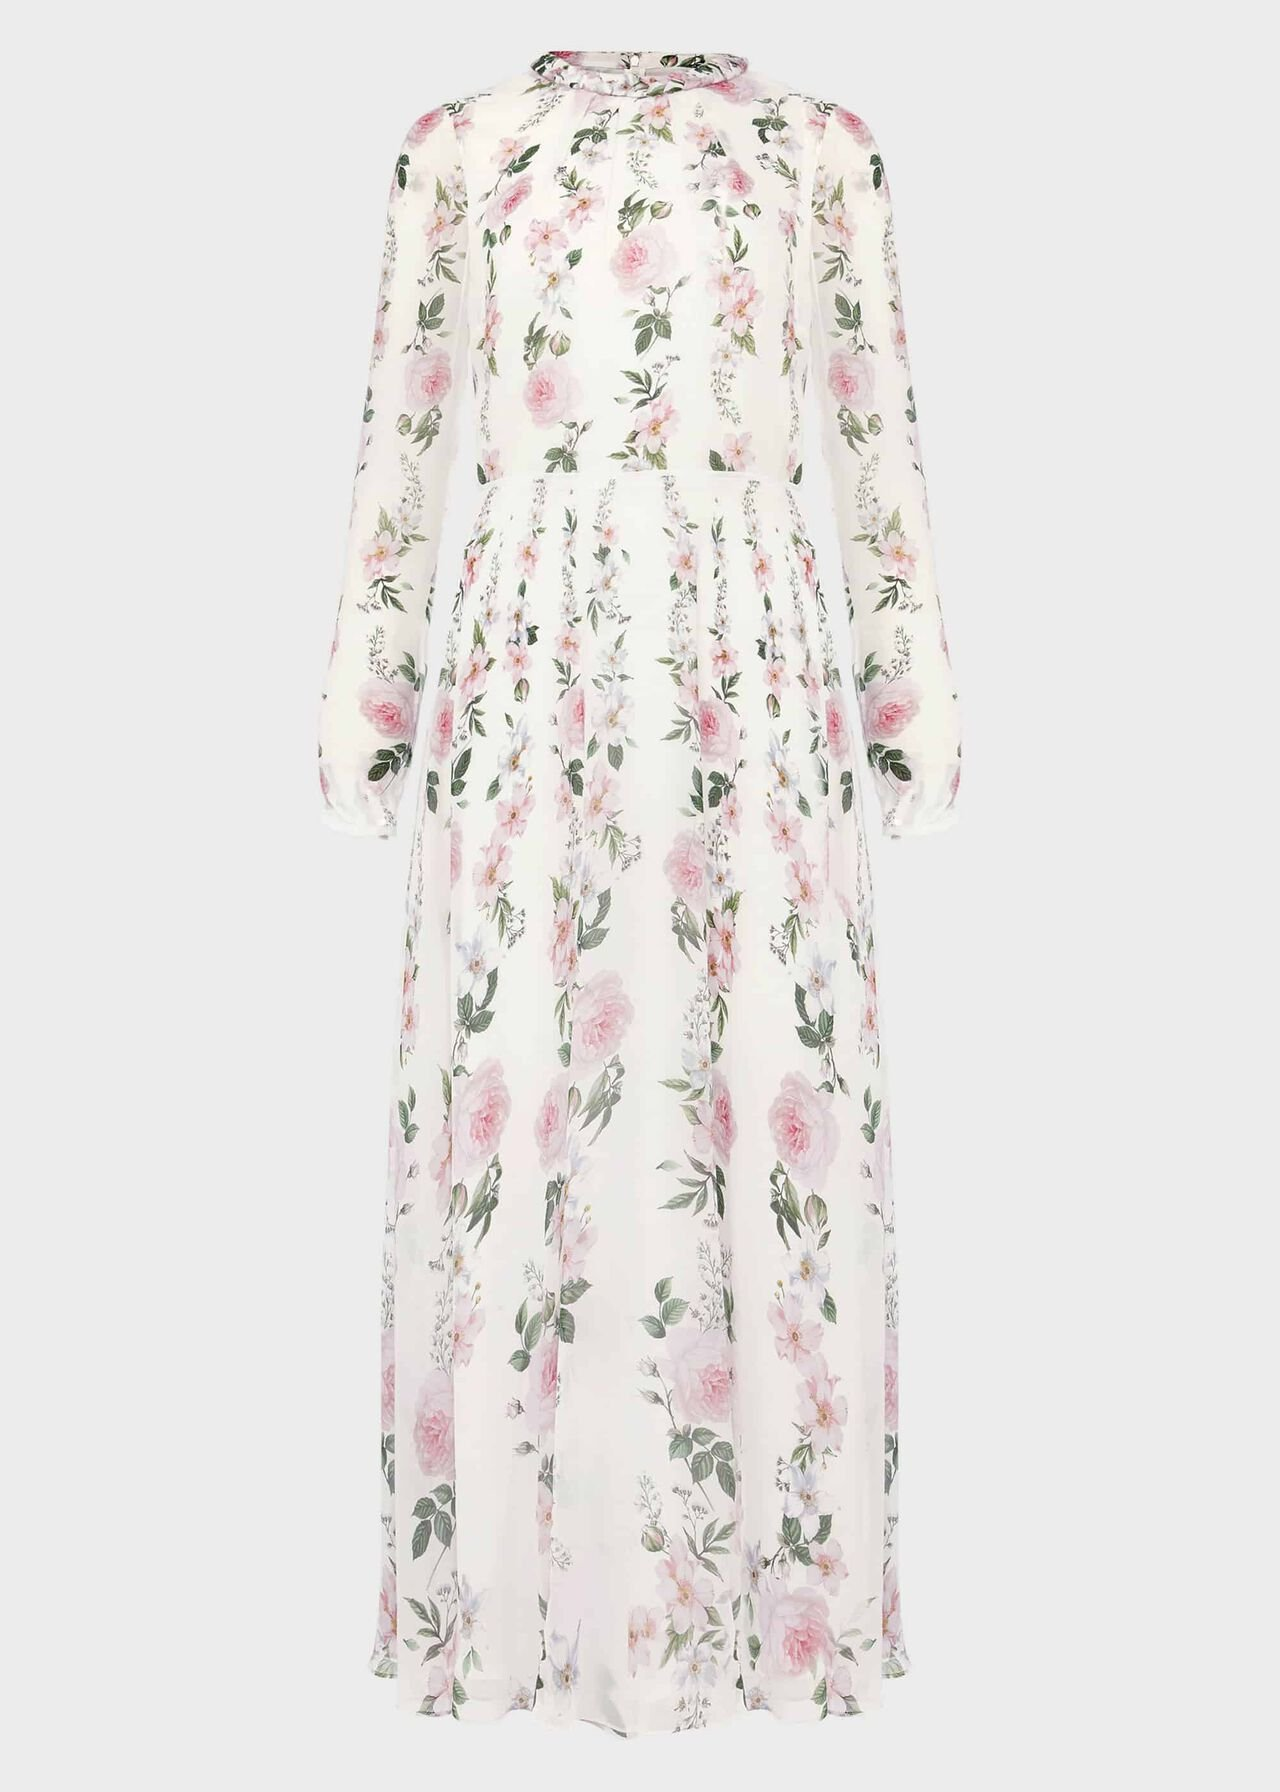 Rosabelle Silk Floral Dress Ivory Multi